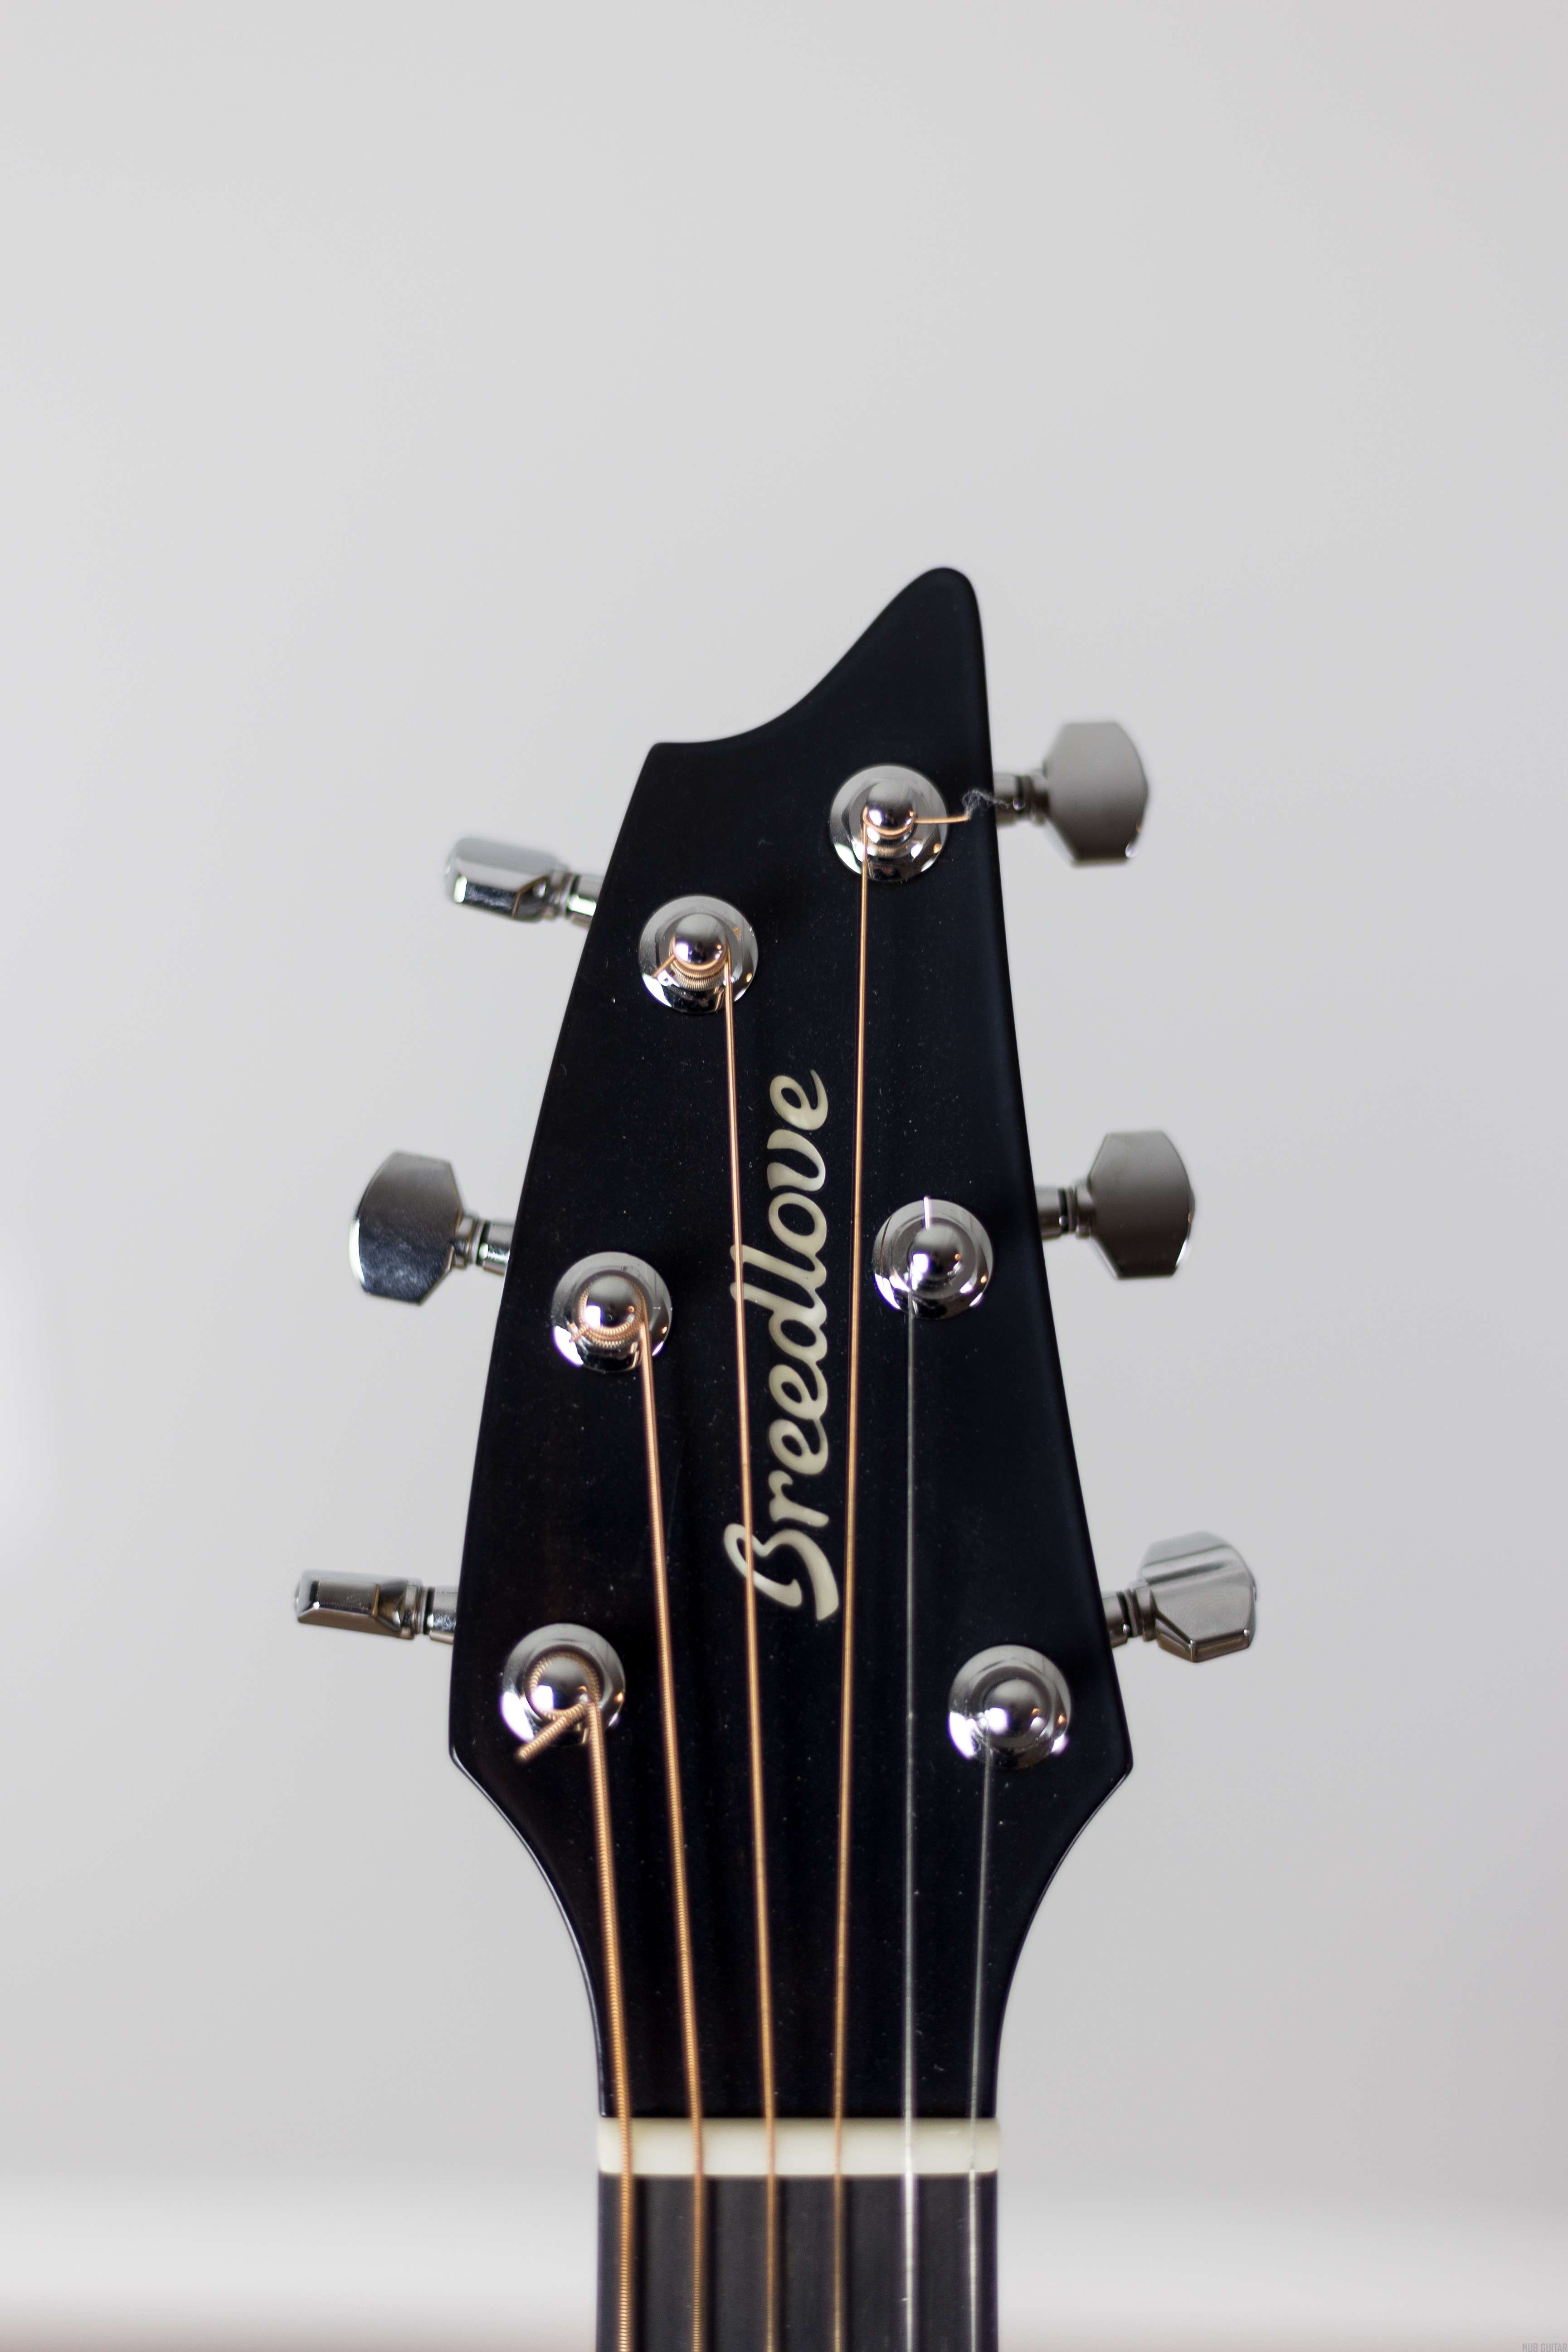 Acoustic Guitar Anatomy Diagram And Definitions Manual Guide